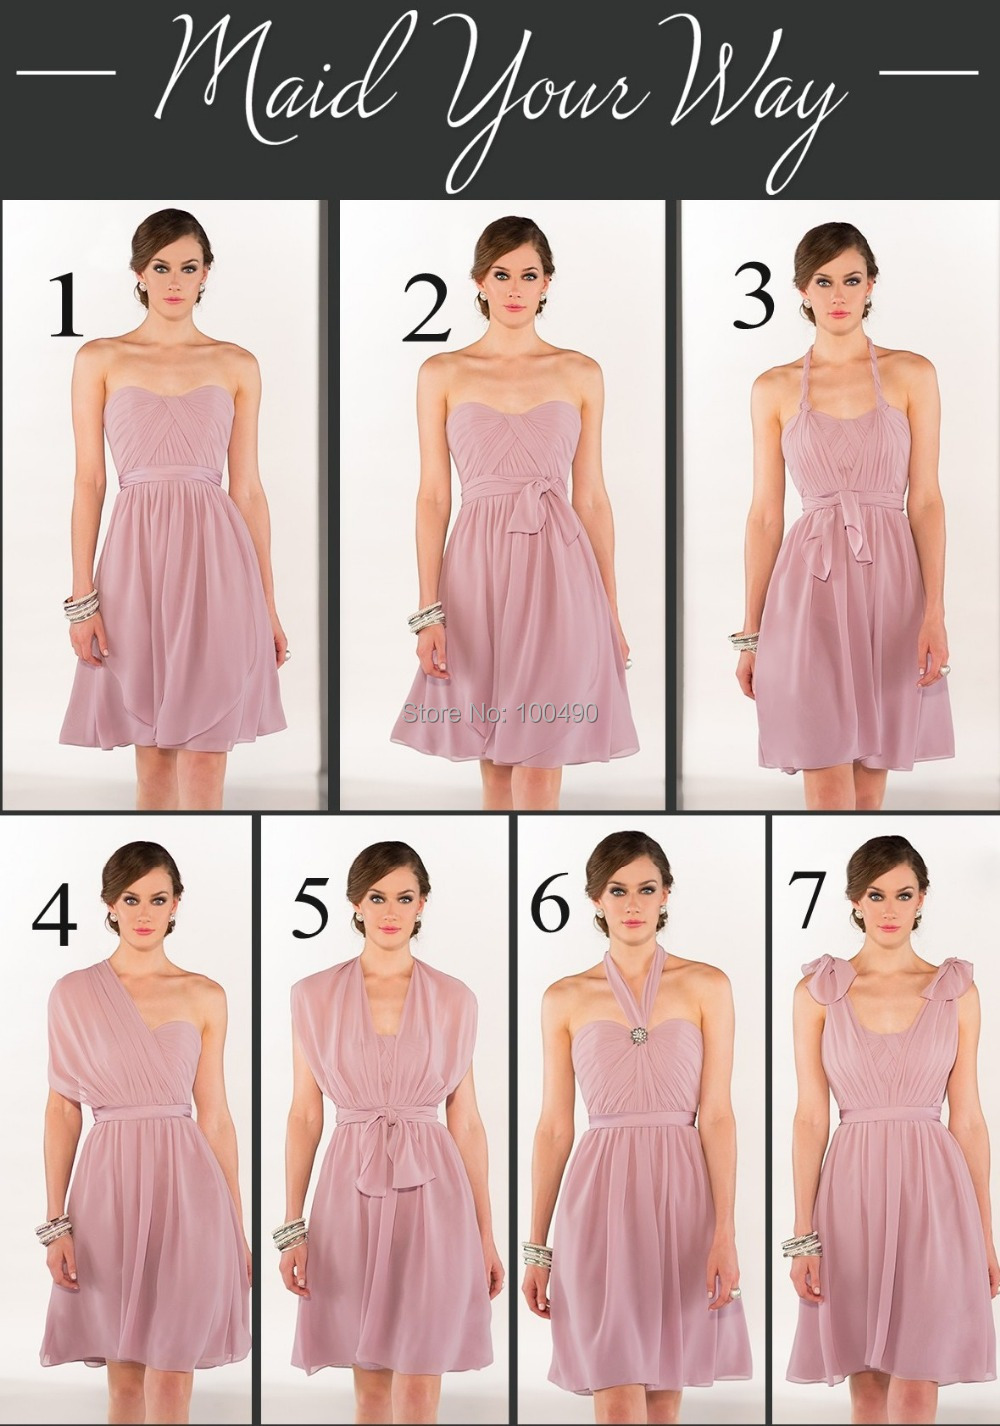 Dusty Rose Pink Bridesmaid Dresses